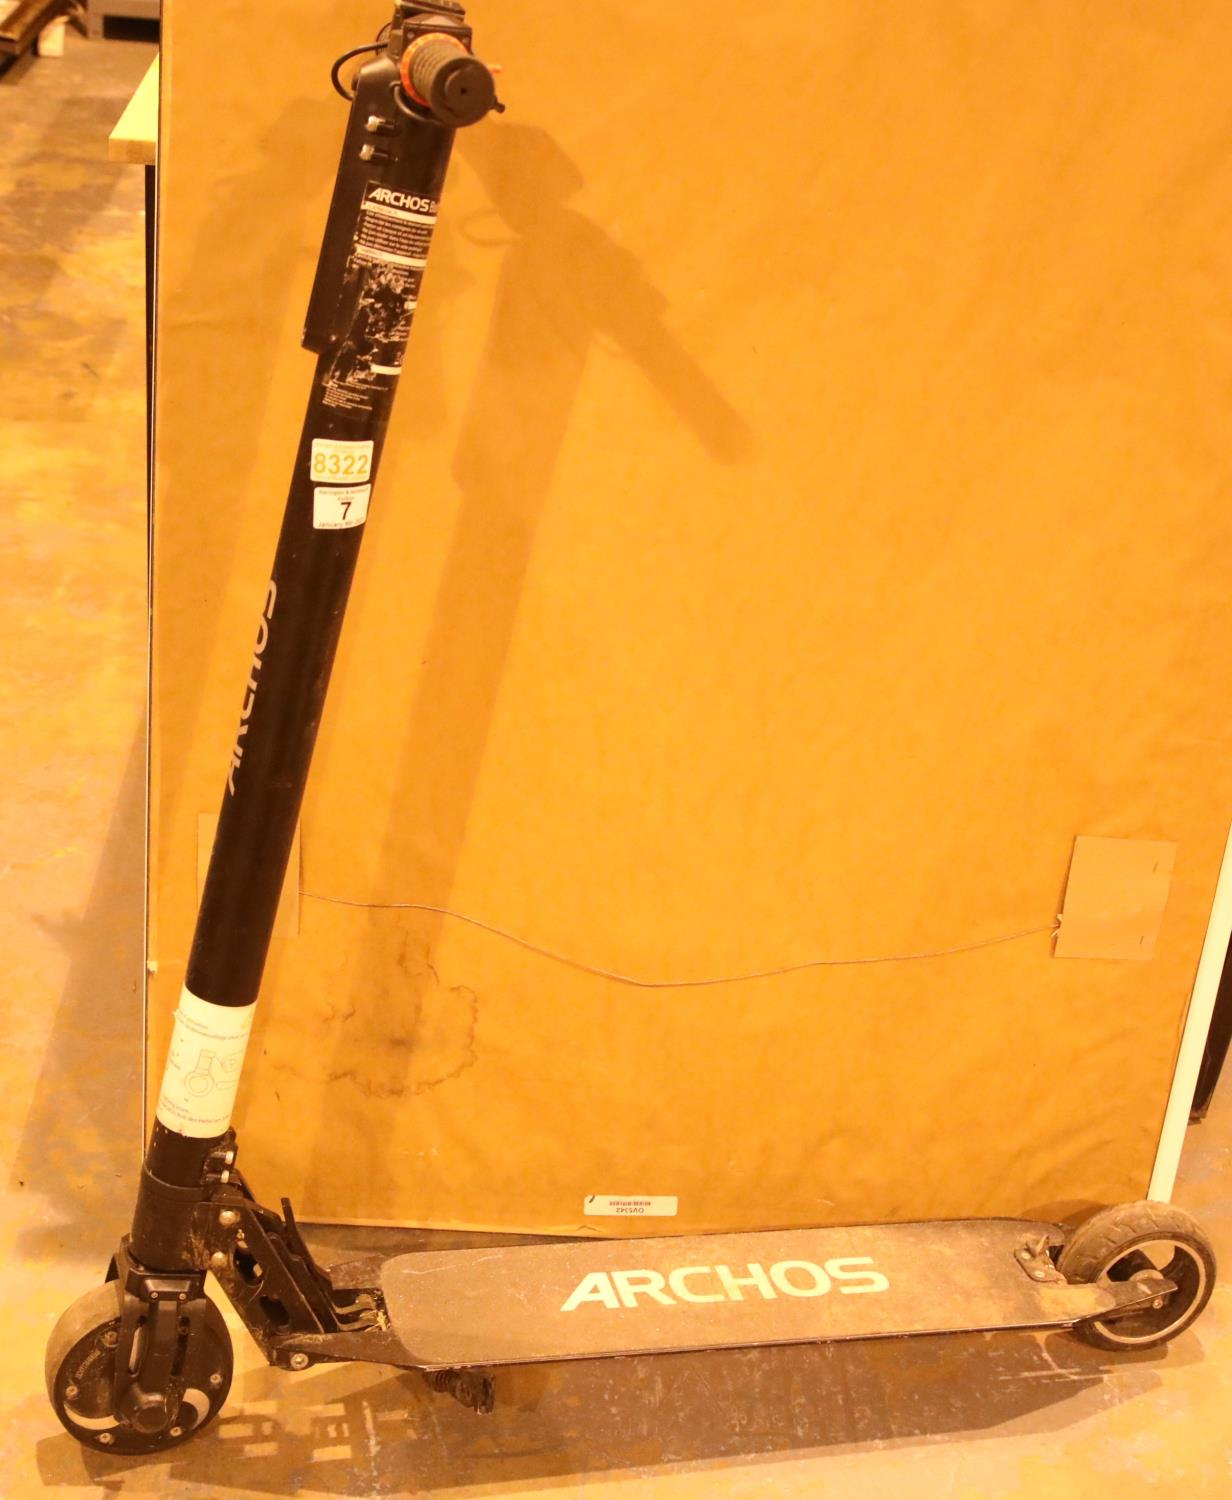 Archos bolt electric scooter lacking charger. Not available for in-house P&P